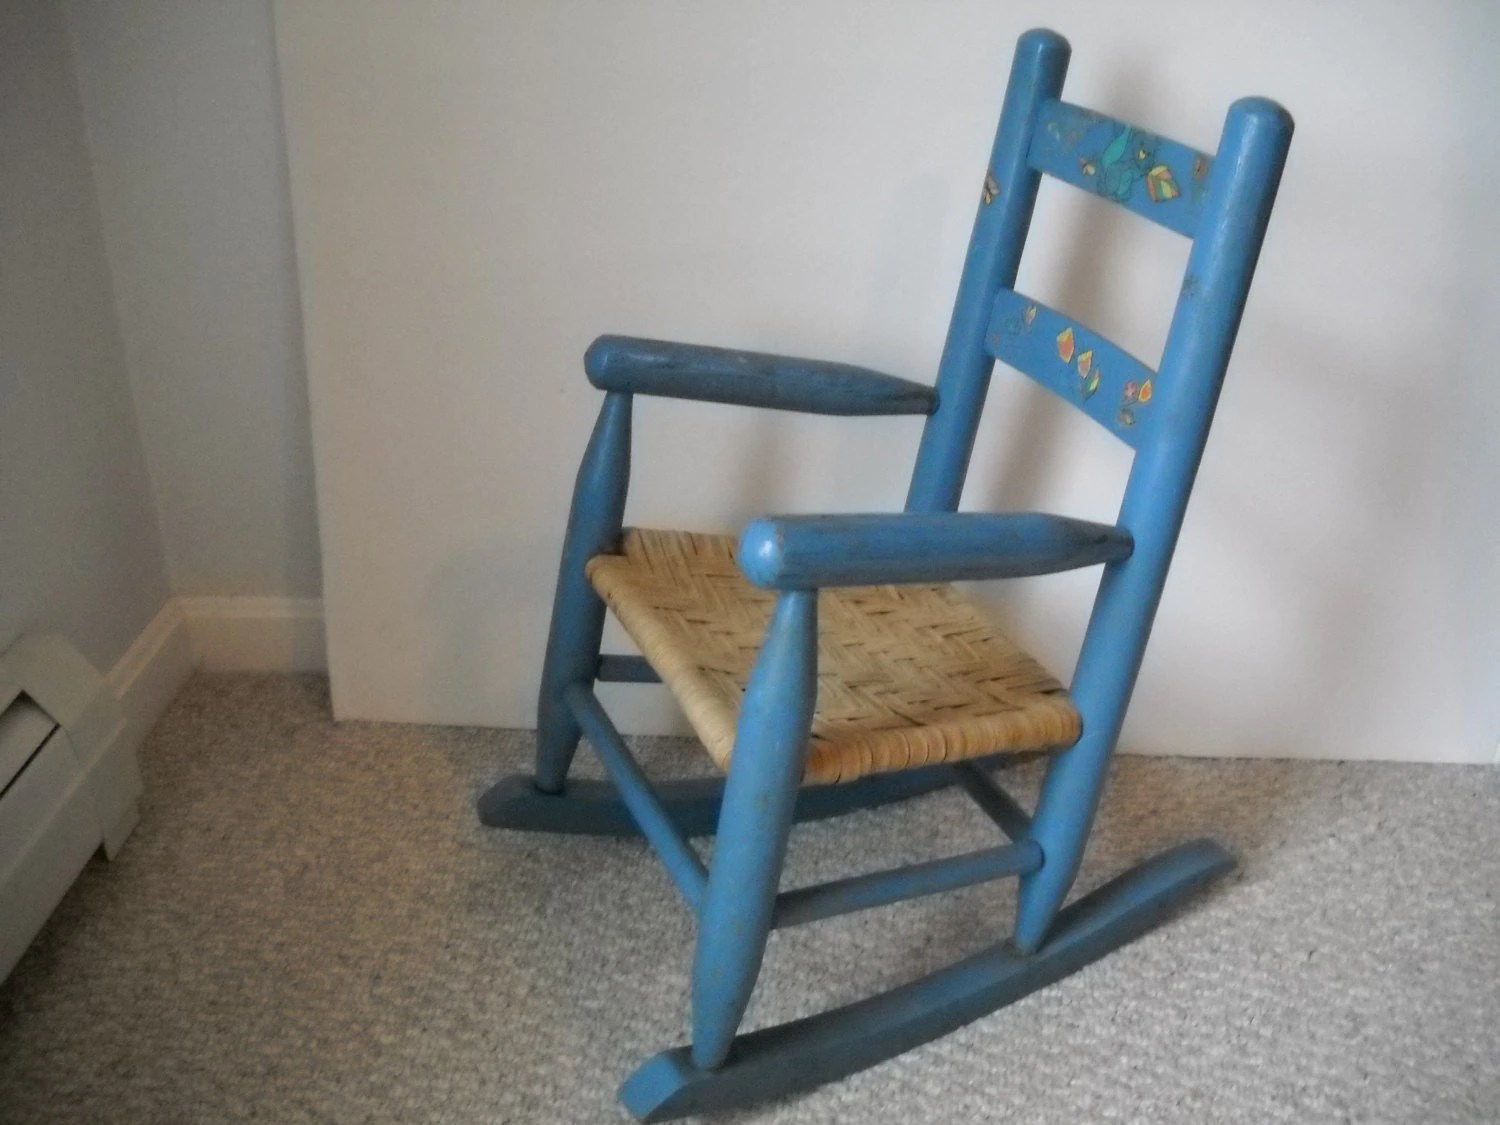 Kids Wooden Rocking Chair Child 39s Wooden Rocking Chair Painted Blue With Decor